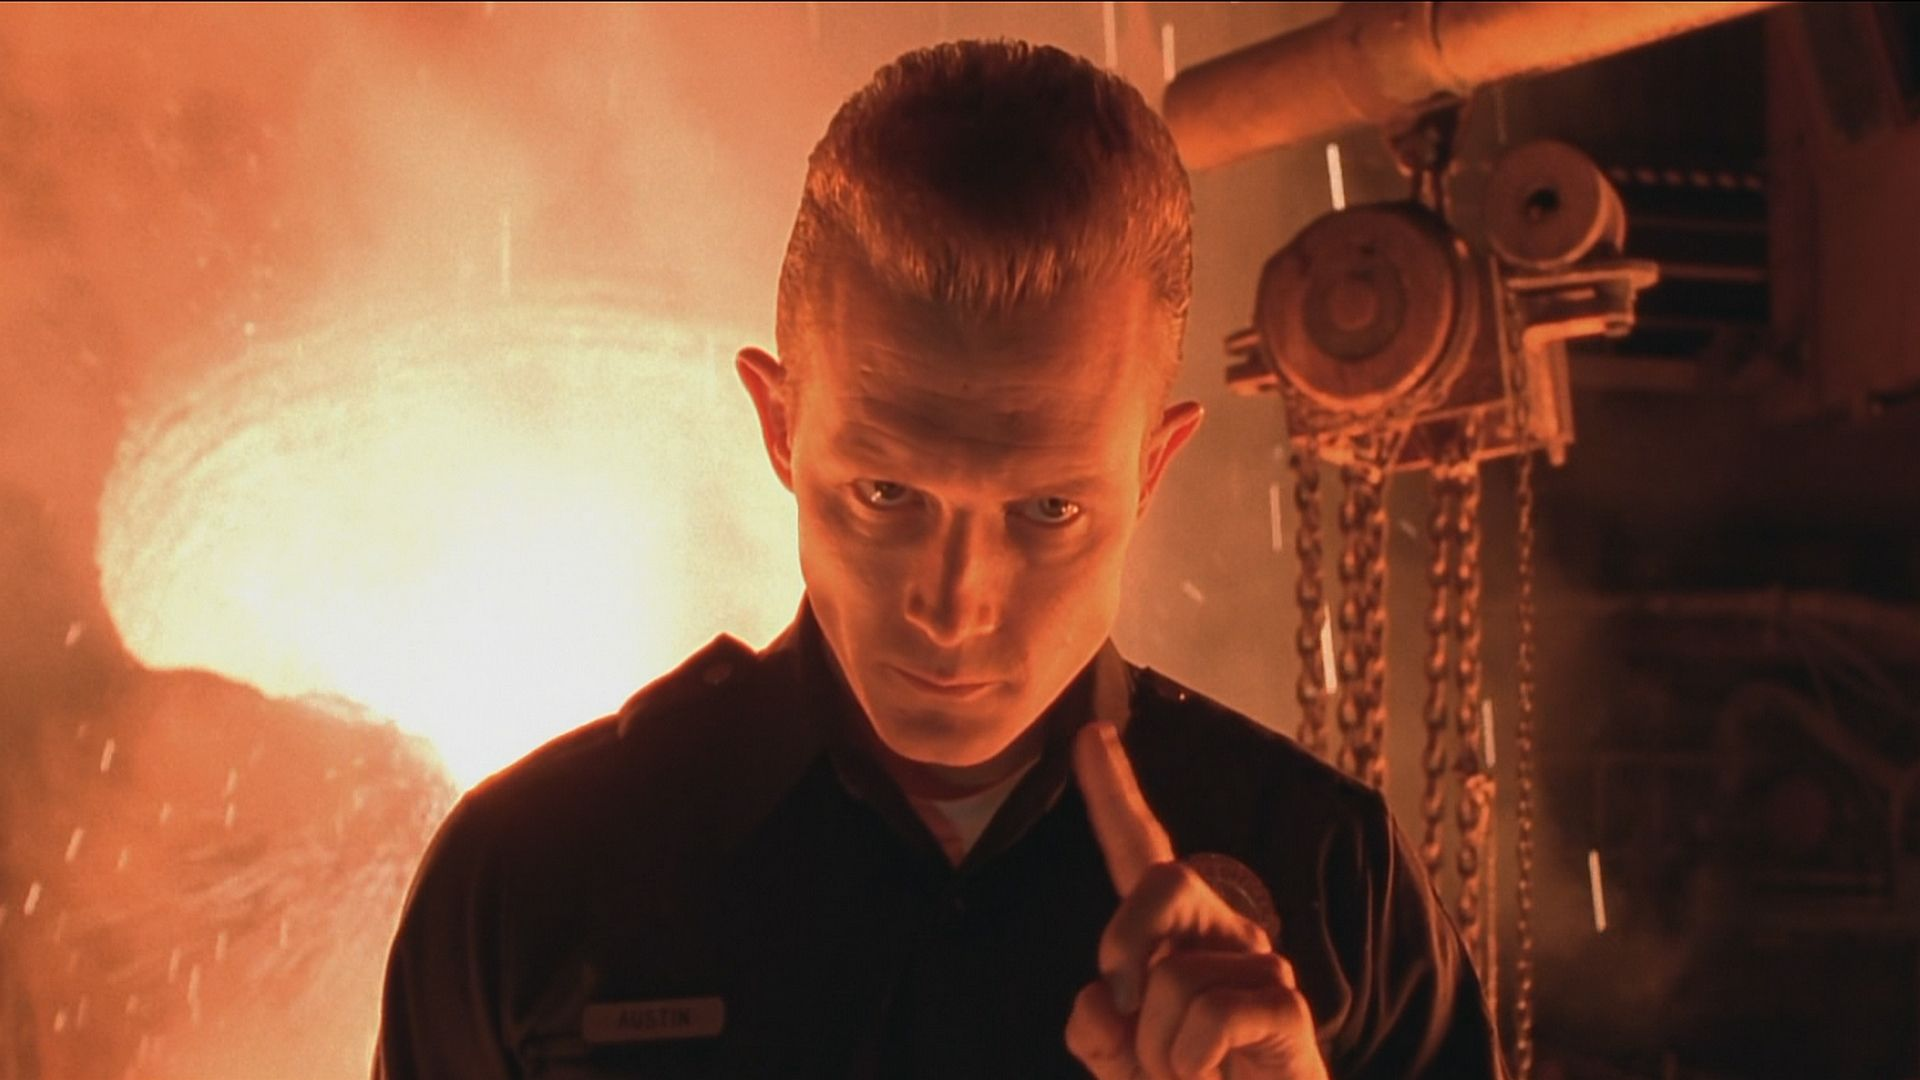 3. T-1000 – Terminator 2: Judgement Day